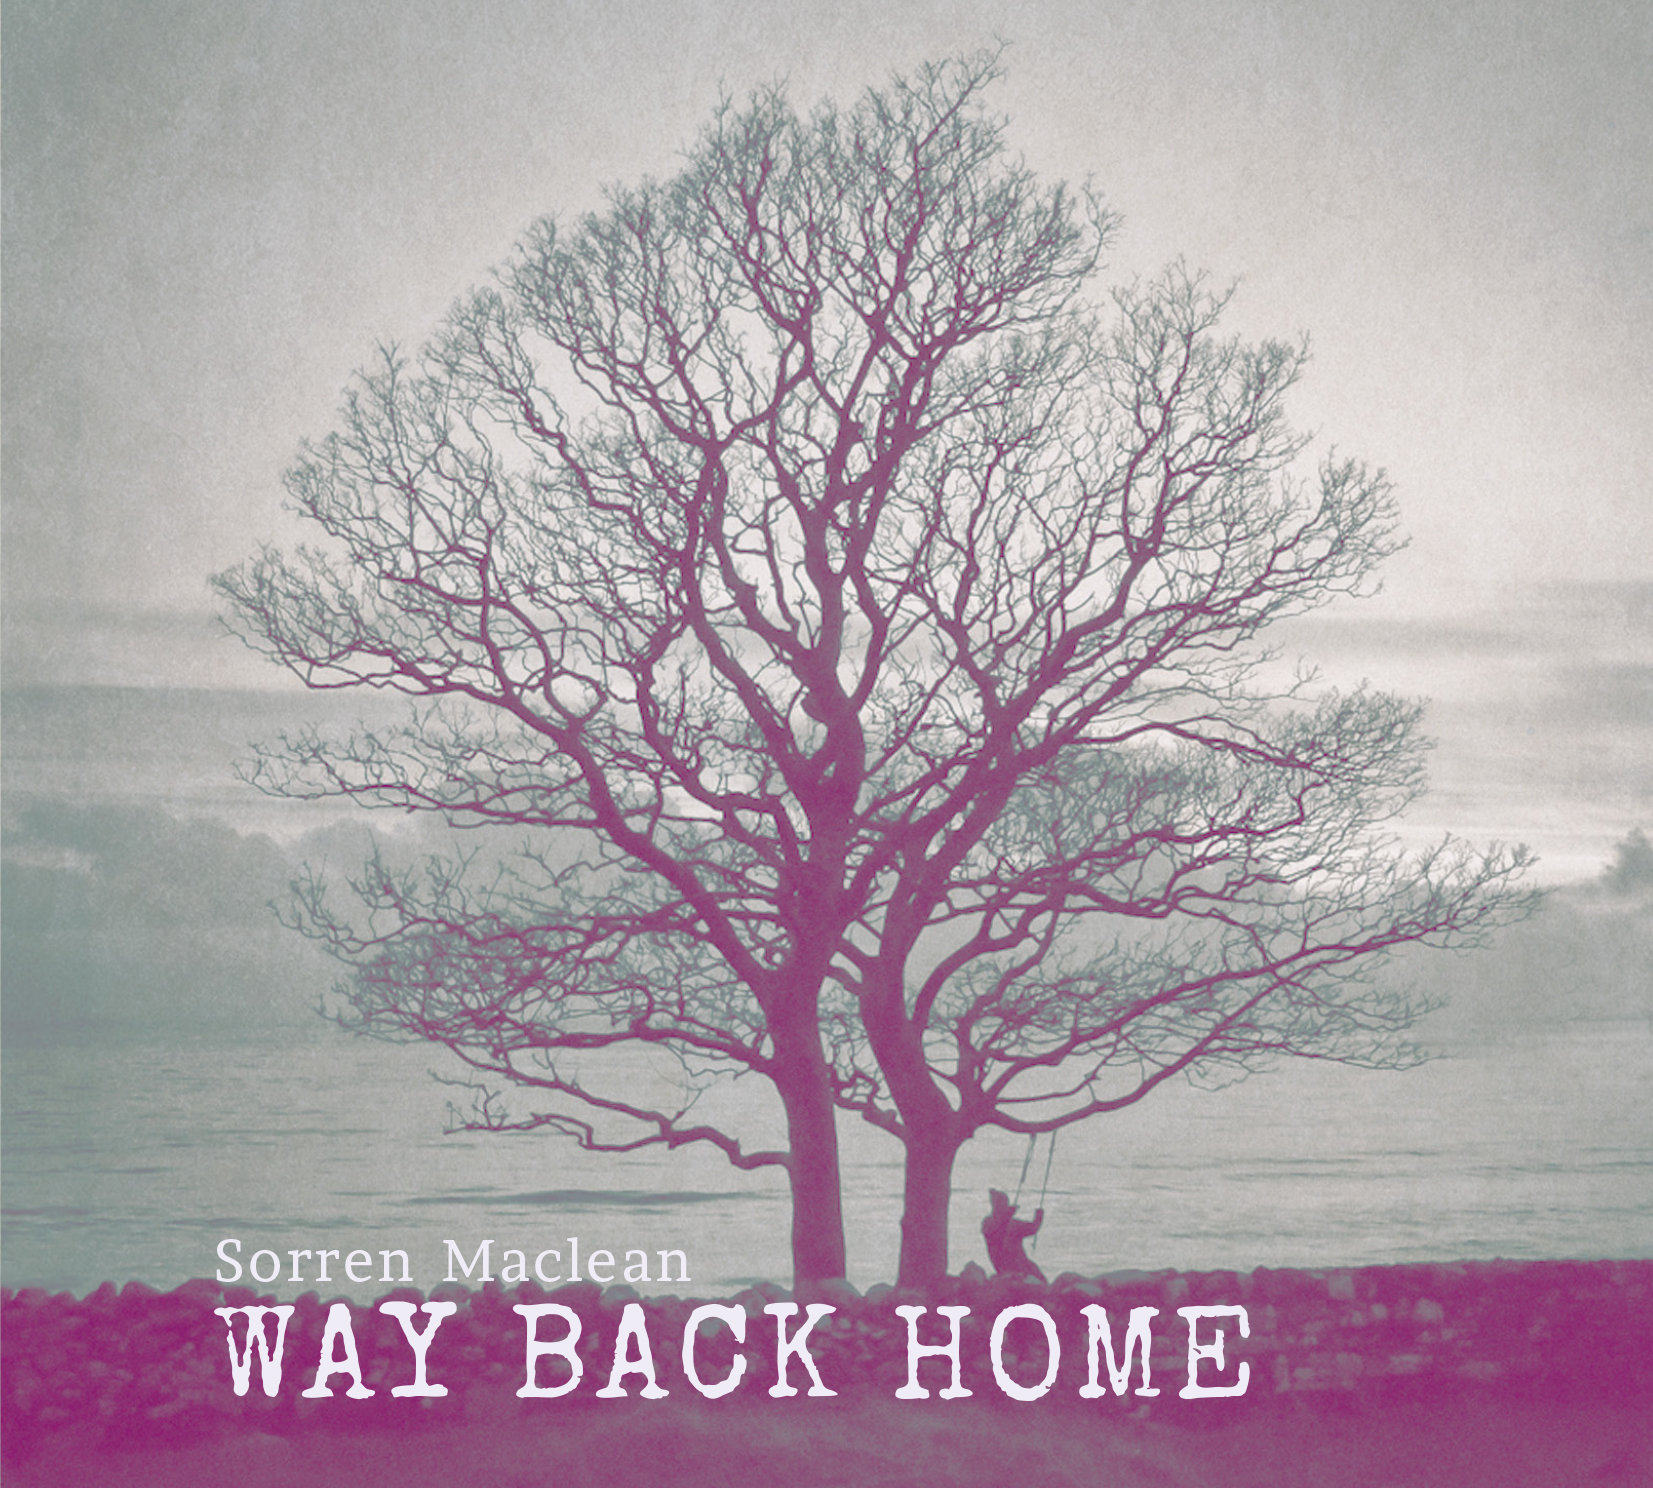 Sorren Maclean - Way Back Home EP - Middle of Nowhere Recordings